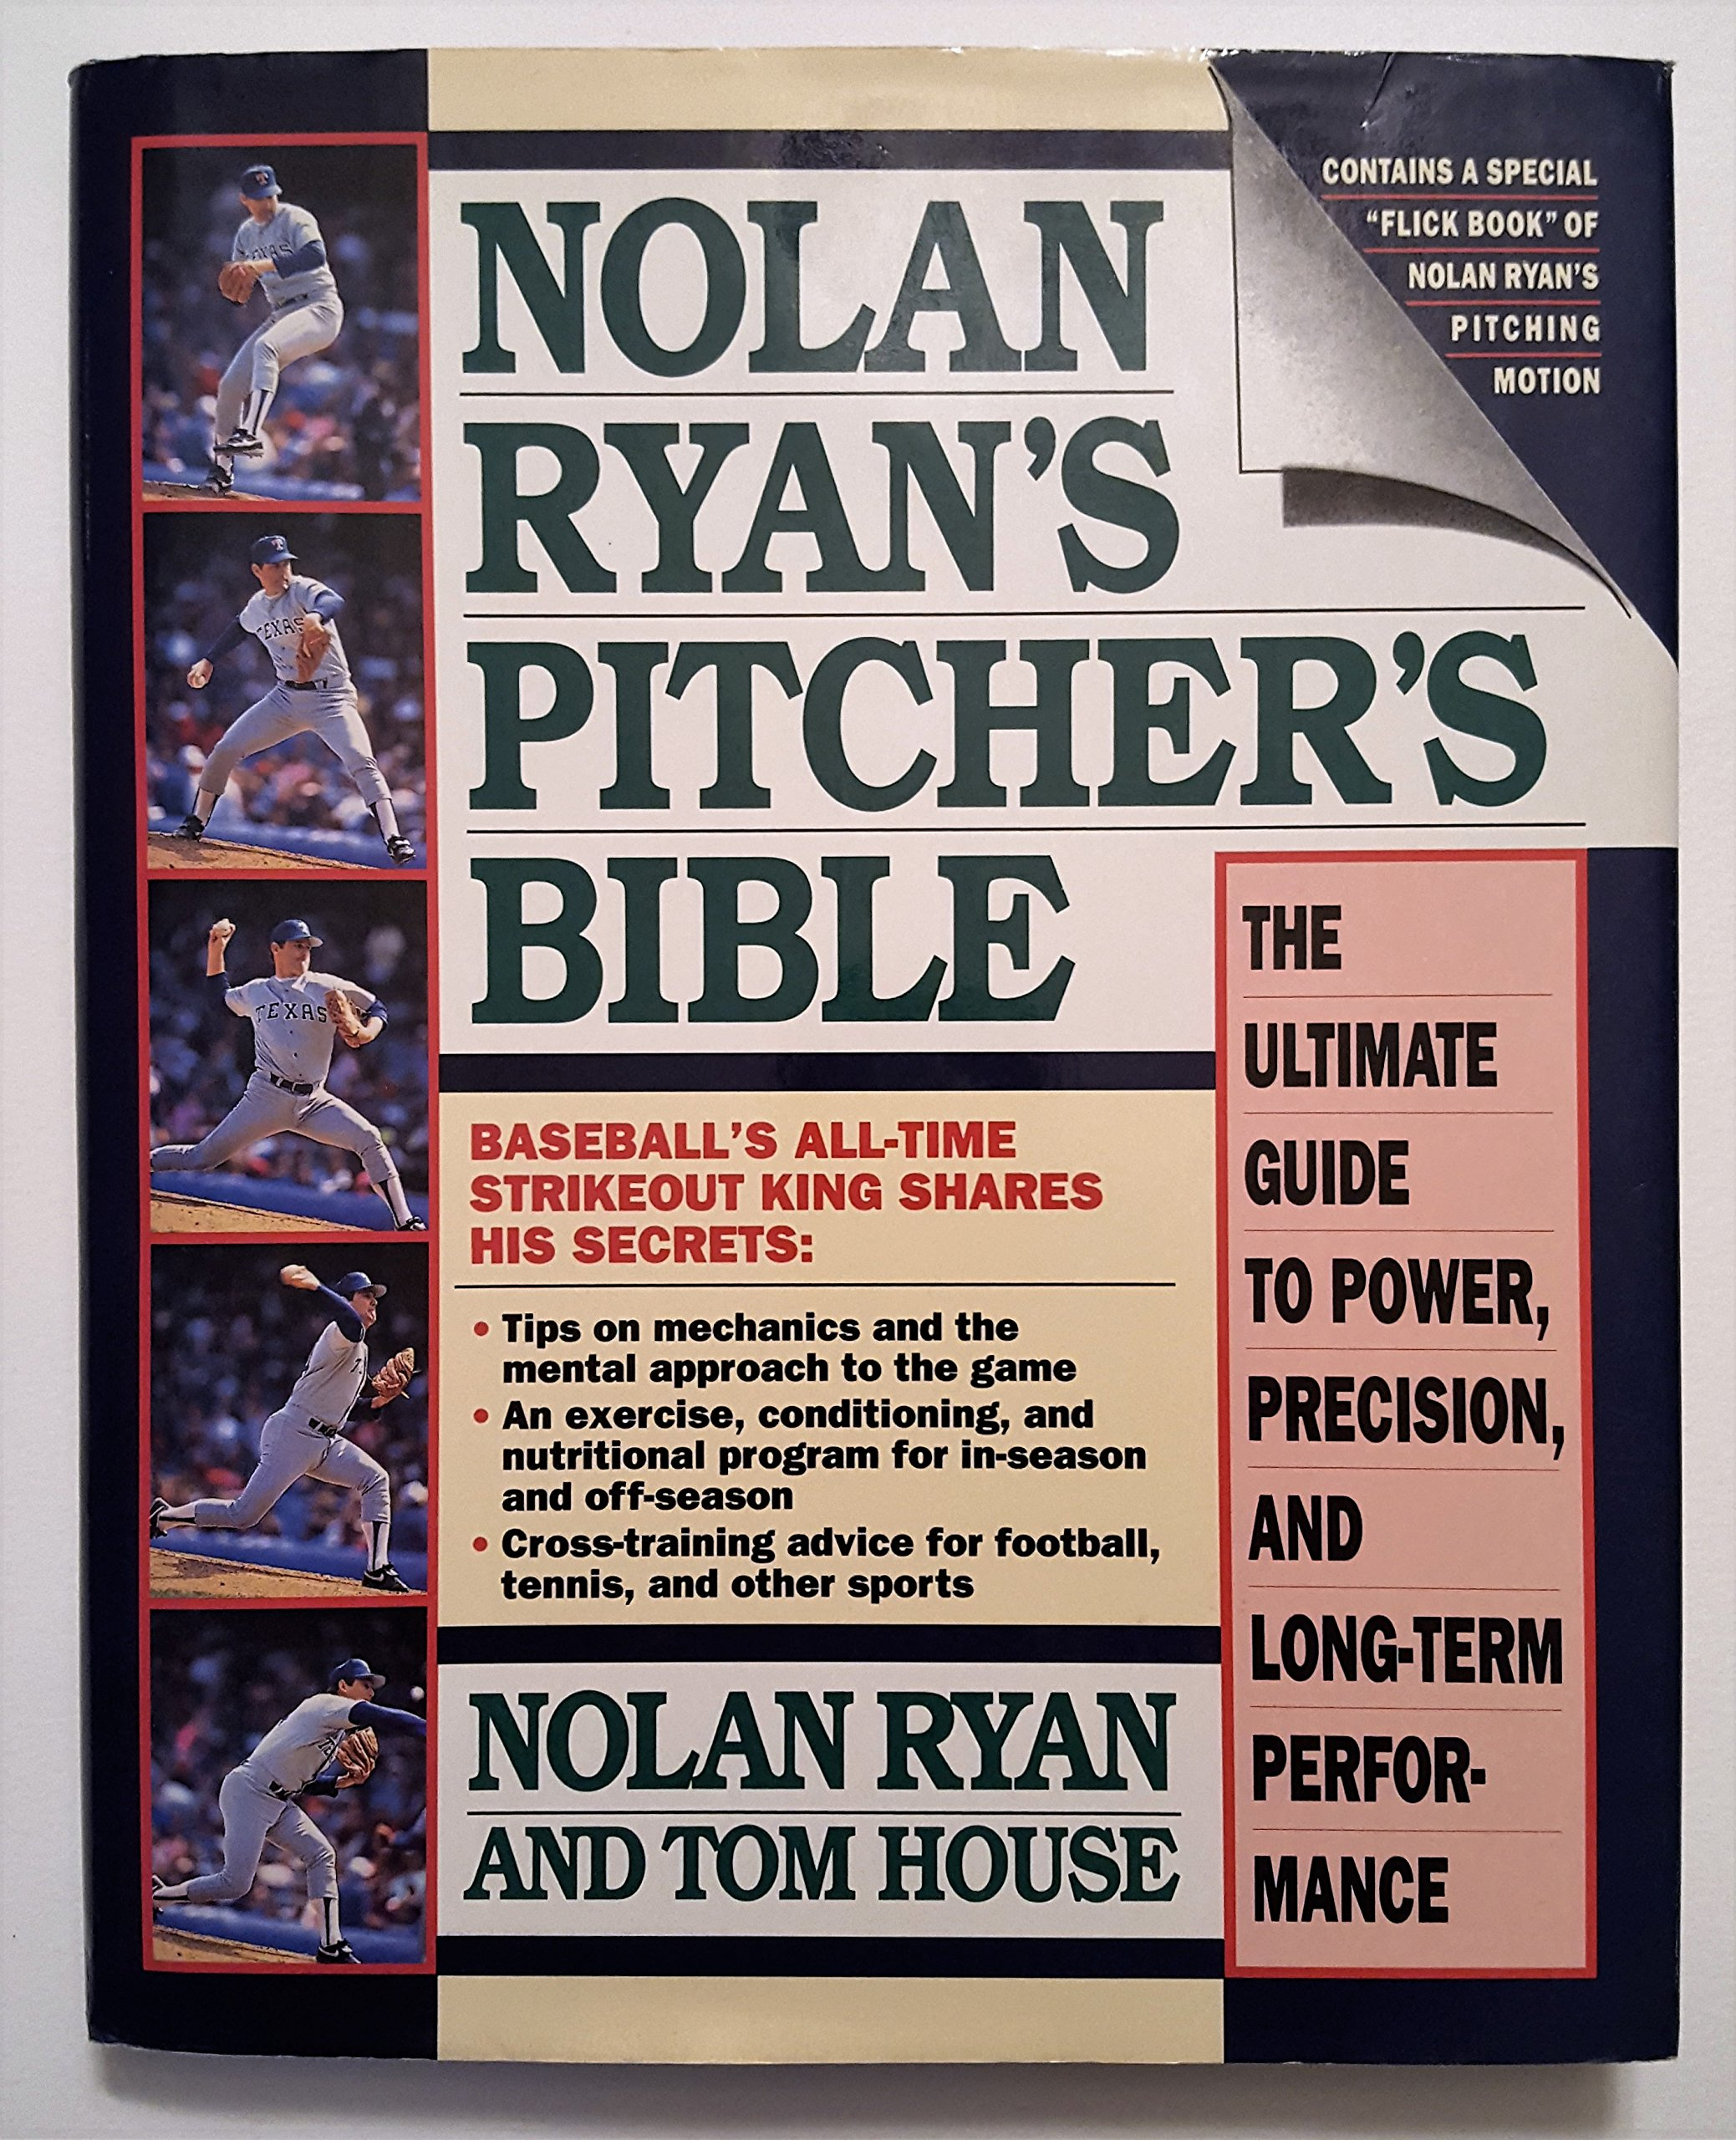 Amazon.in: Buy Nolan Ryan's Pitcher's Bible: The Ultimate Guide to Power-  Precision- and Long-Term Performance Book Online at Low Prices in India |  Nolan ...